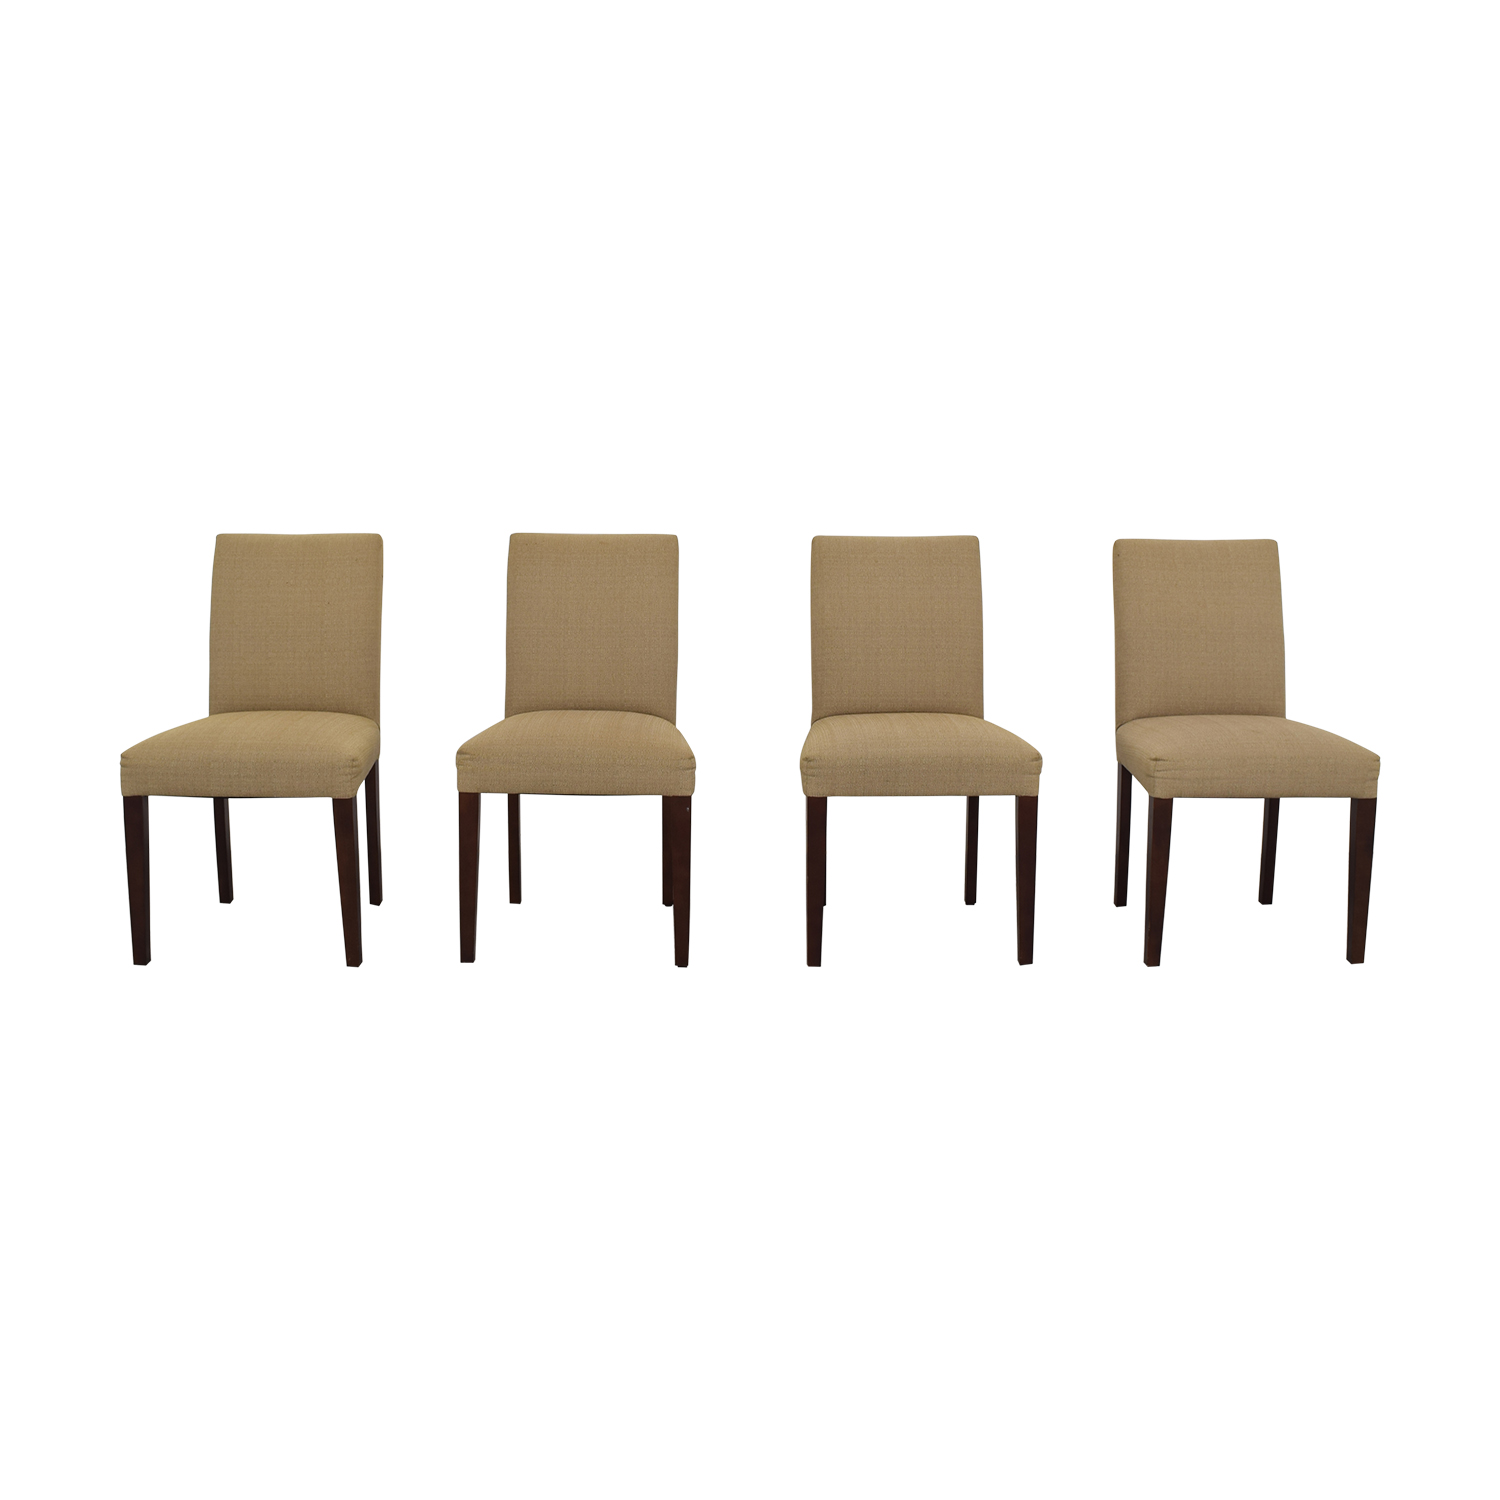 buy Room & Board Peyton Tan Dining Chairs Room & Board